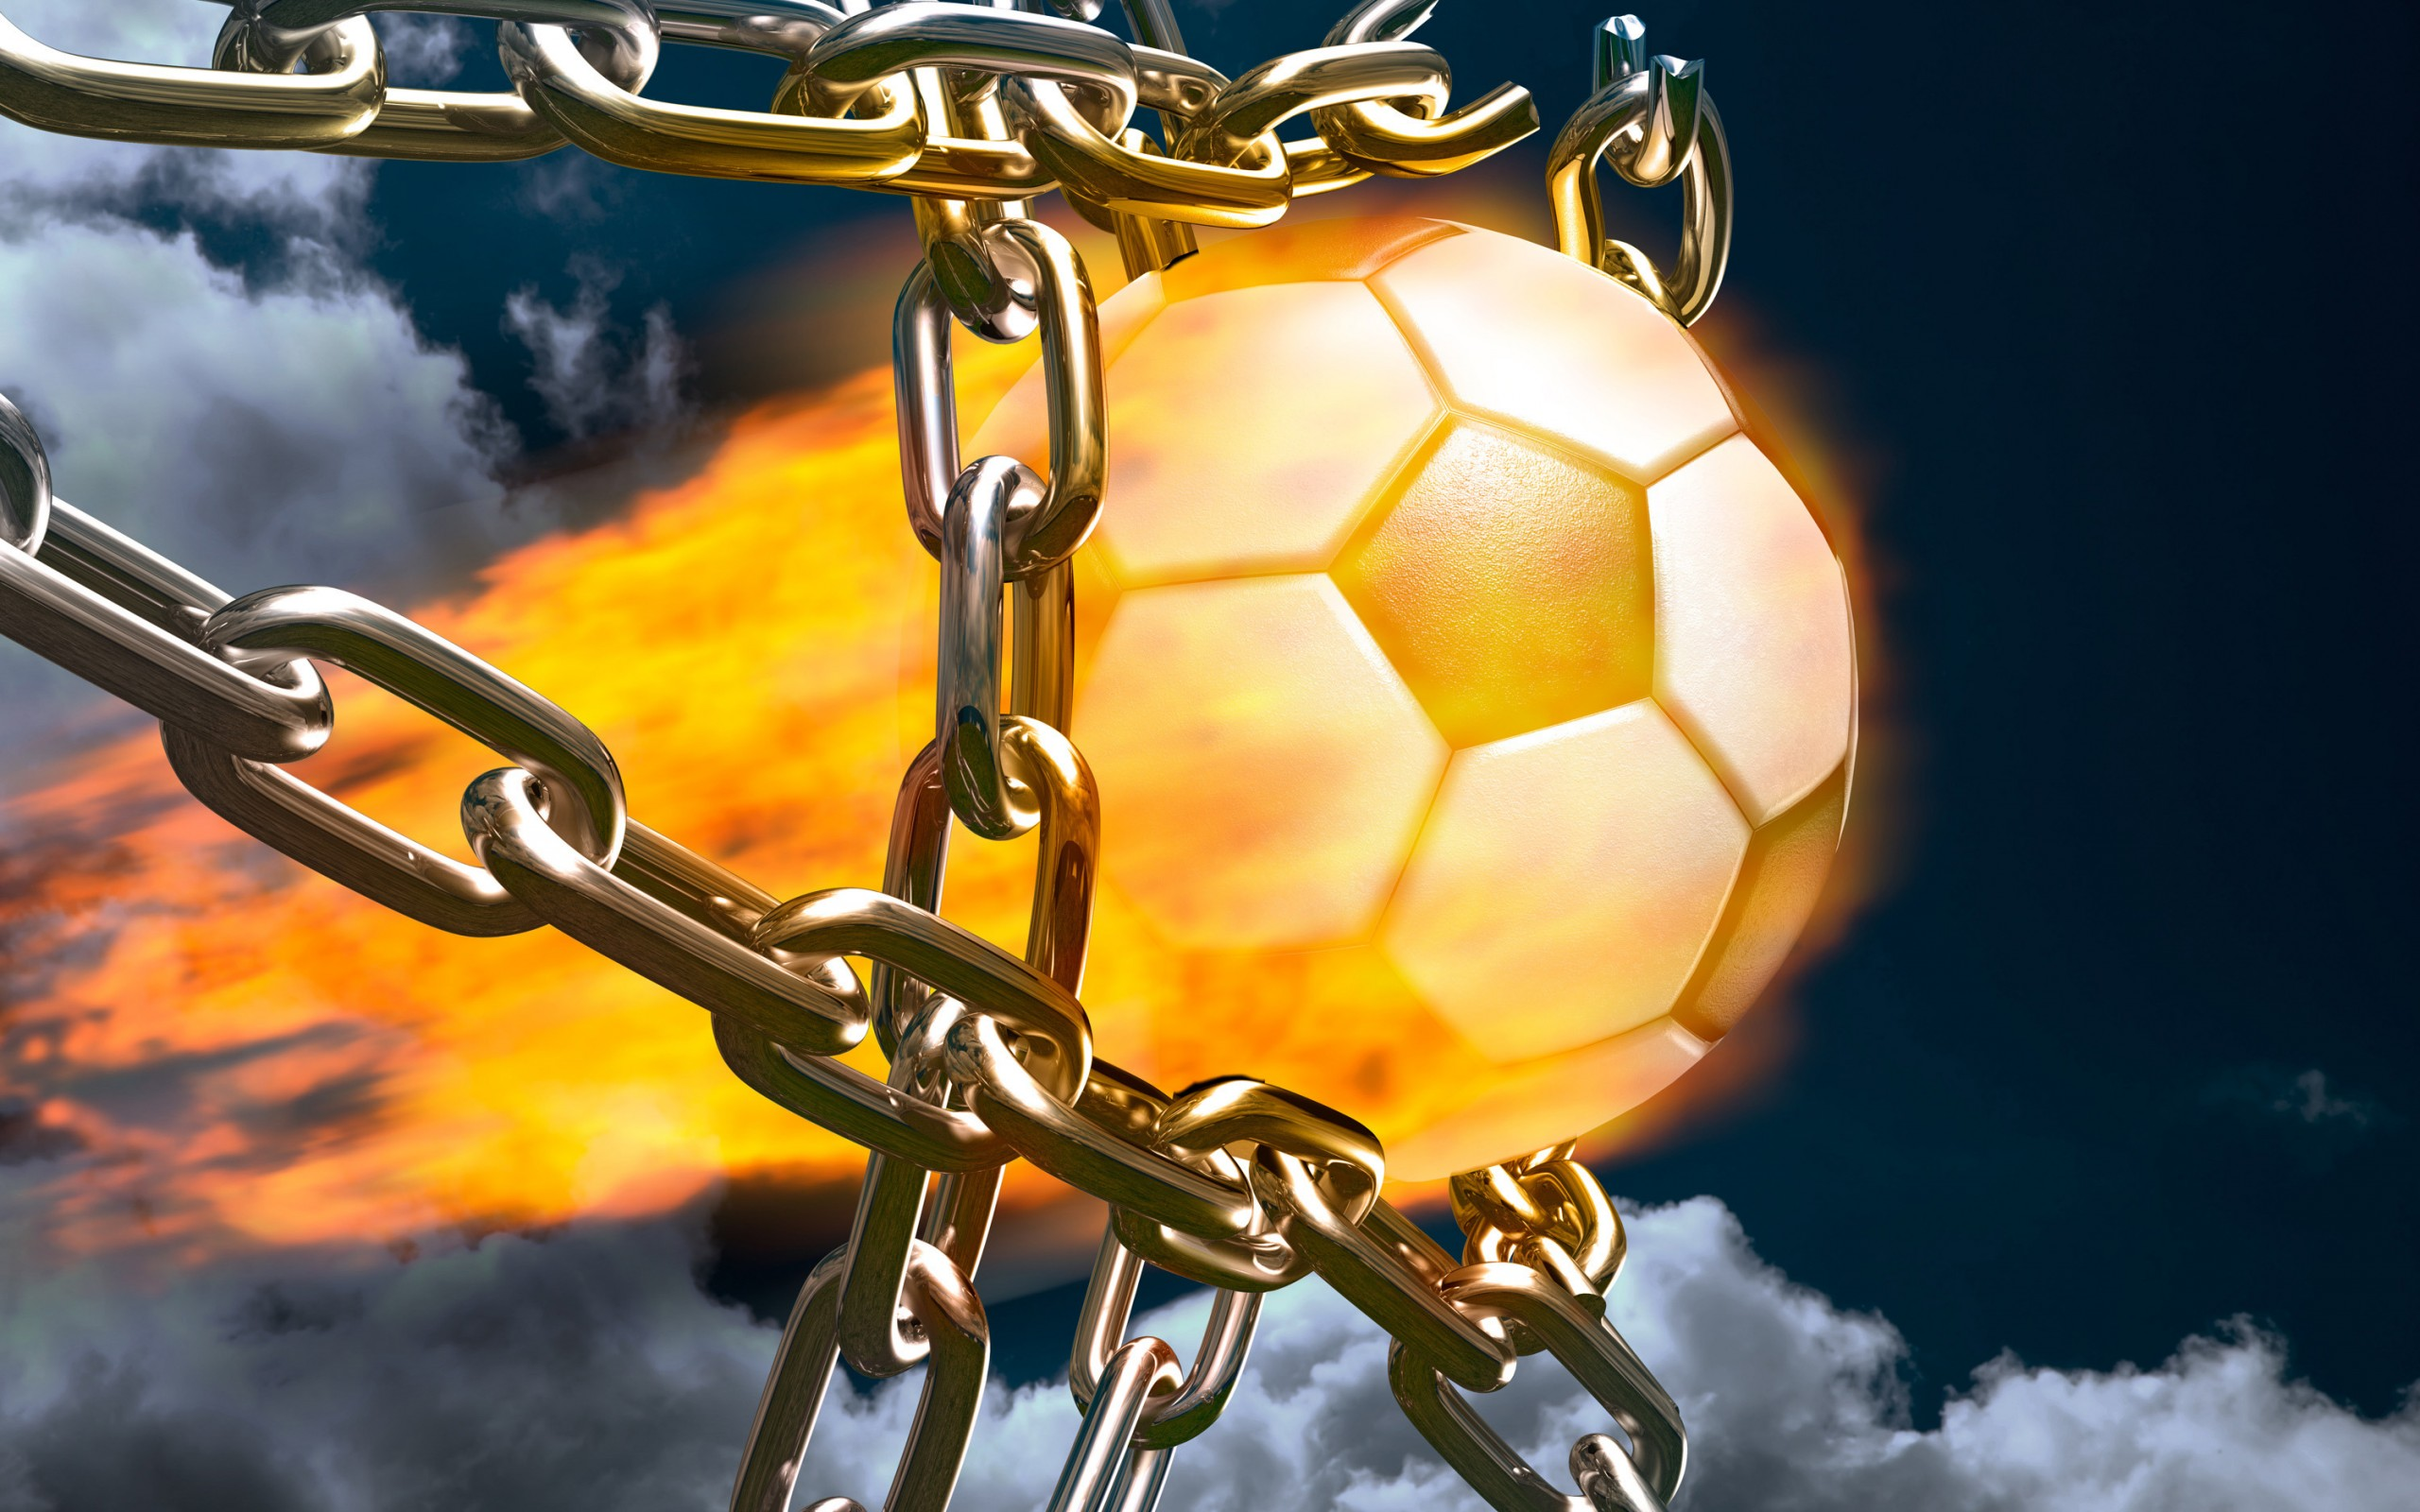 The Gallery For Flaming Football Background Images: Fire Fußball Hintergrundbilder